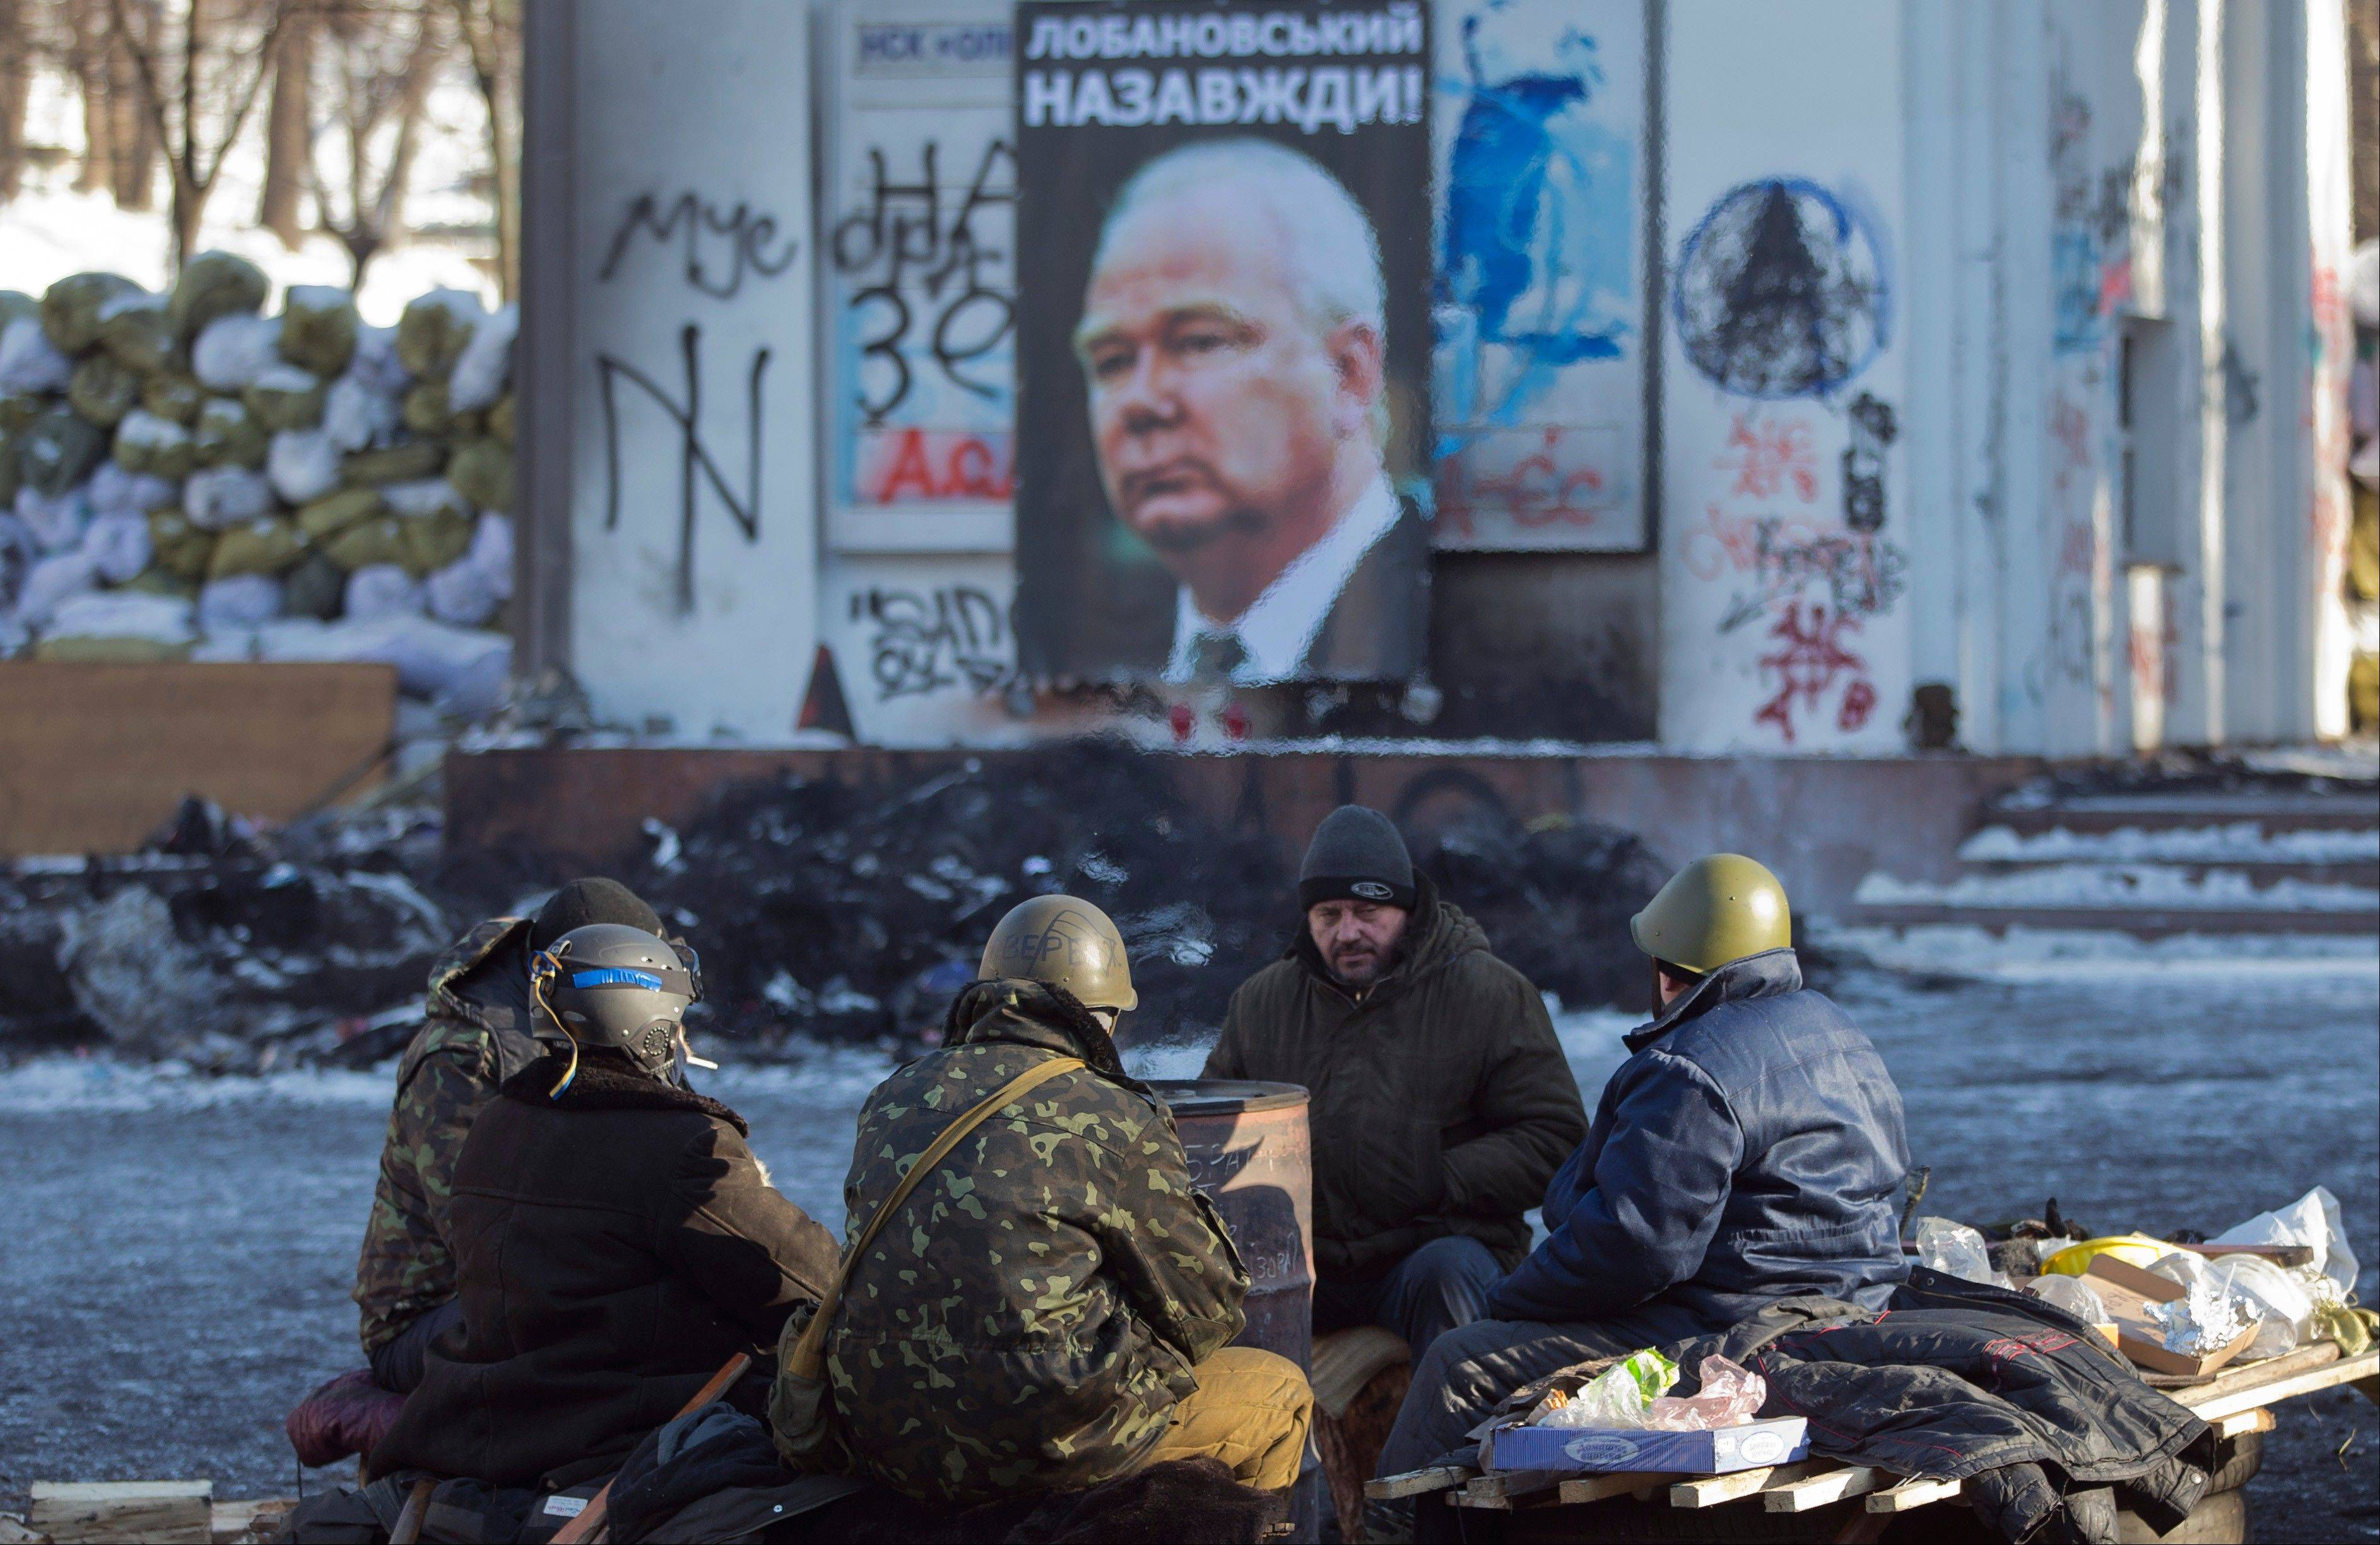 A group of anti-government protesters warm themselves around a barrel near a poster of famous Ukrainian soccer coach and player Valeriy Lobanovskyi, in central Kiev, Ukraine, Sunday.